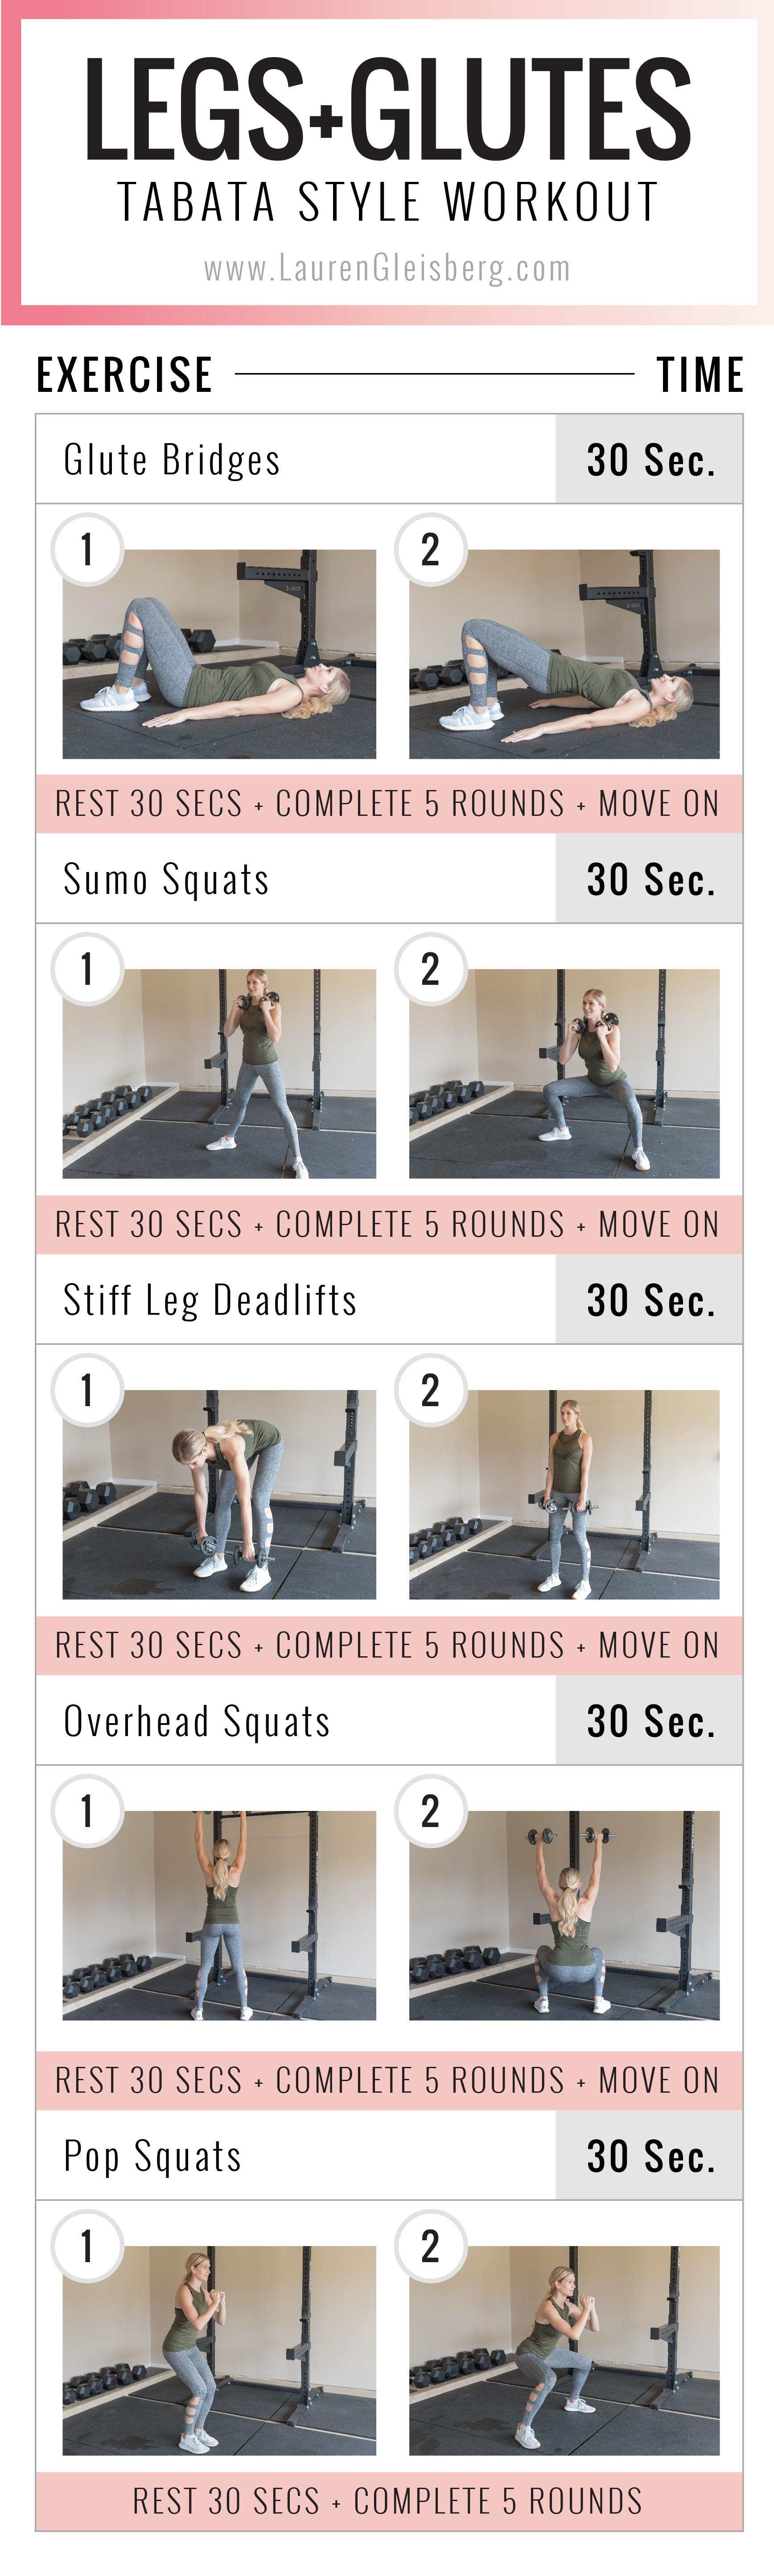 lauren gleisberg at home legs and glute workout